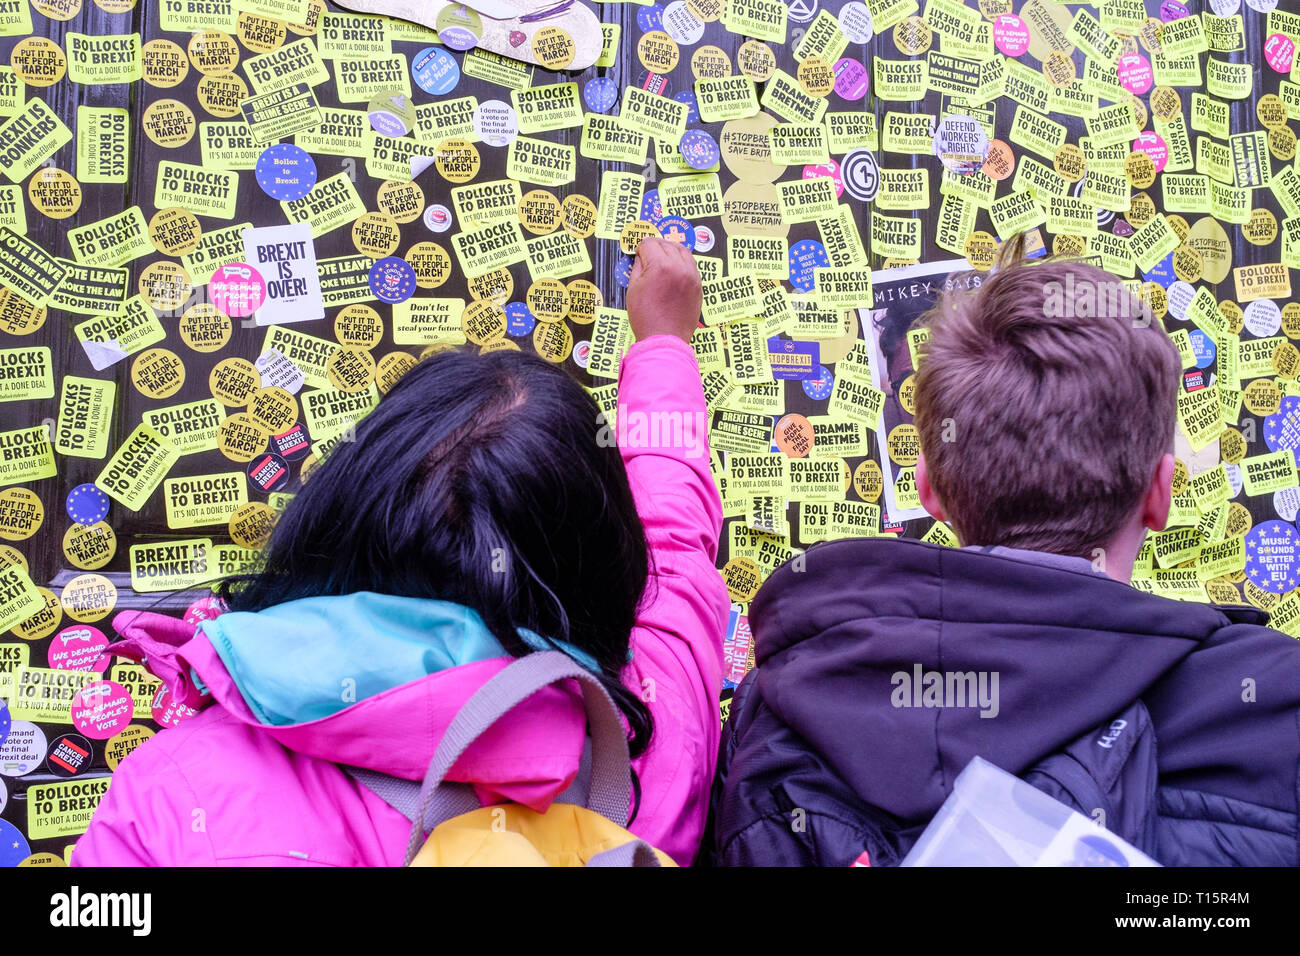 London, UK. 23rd March 2019. Hundreds of thousands of people march through central London demanding a second vote on the UK's membership of the European Union. Pictured: Pro EU Remainers post hundreds of anti-Brexit stickers on doors of the UK Government Cabinet Office building in Whitehall. Credit: mark phillips/Alamy Live News - Stock Image